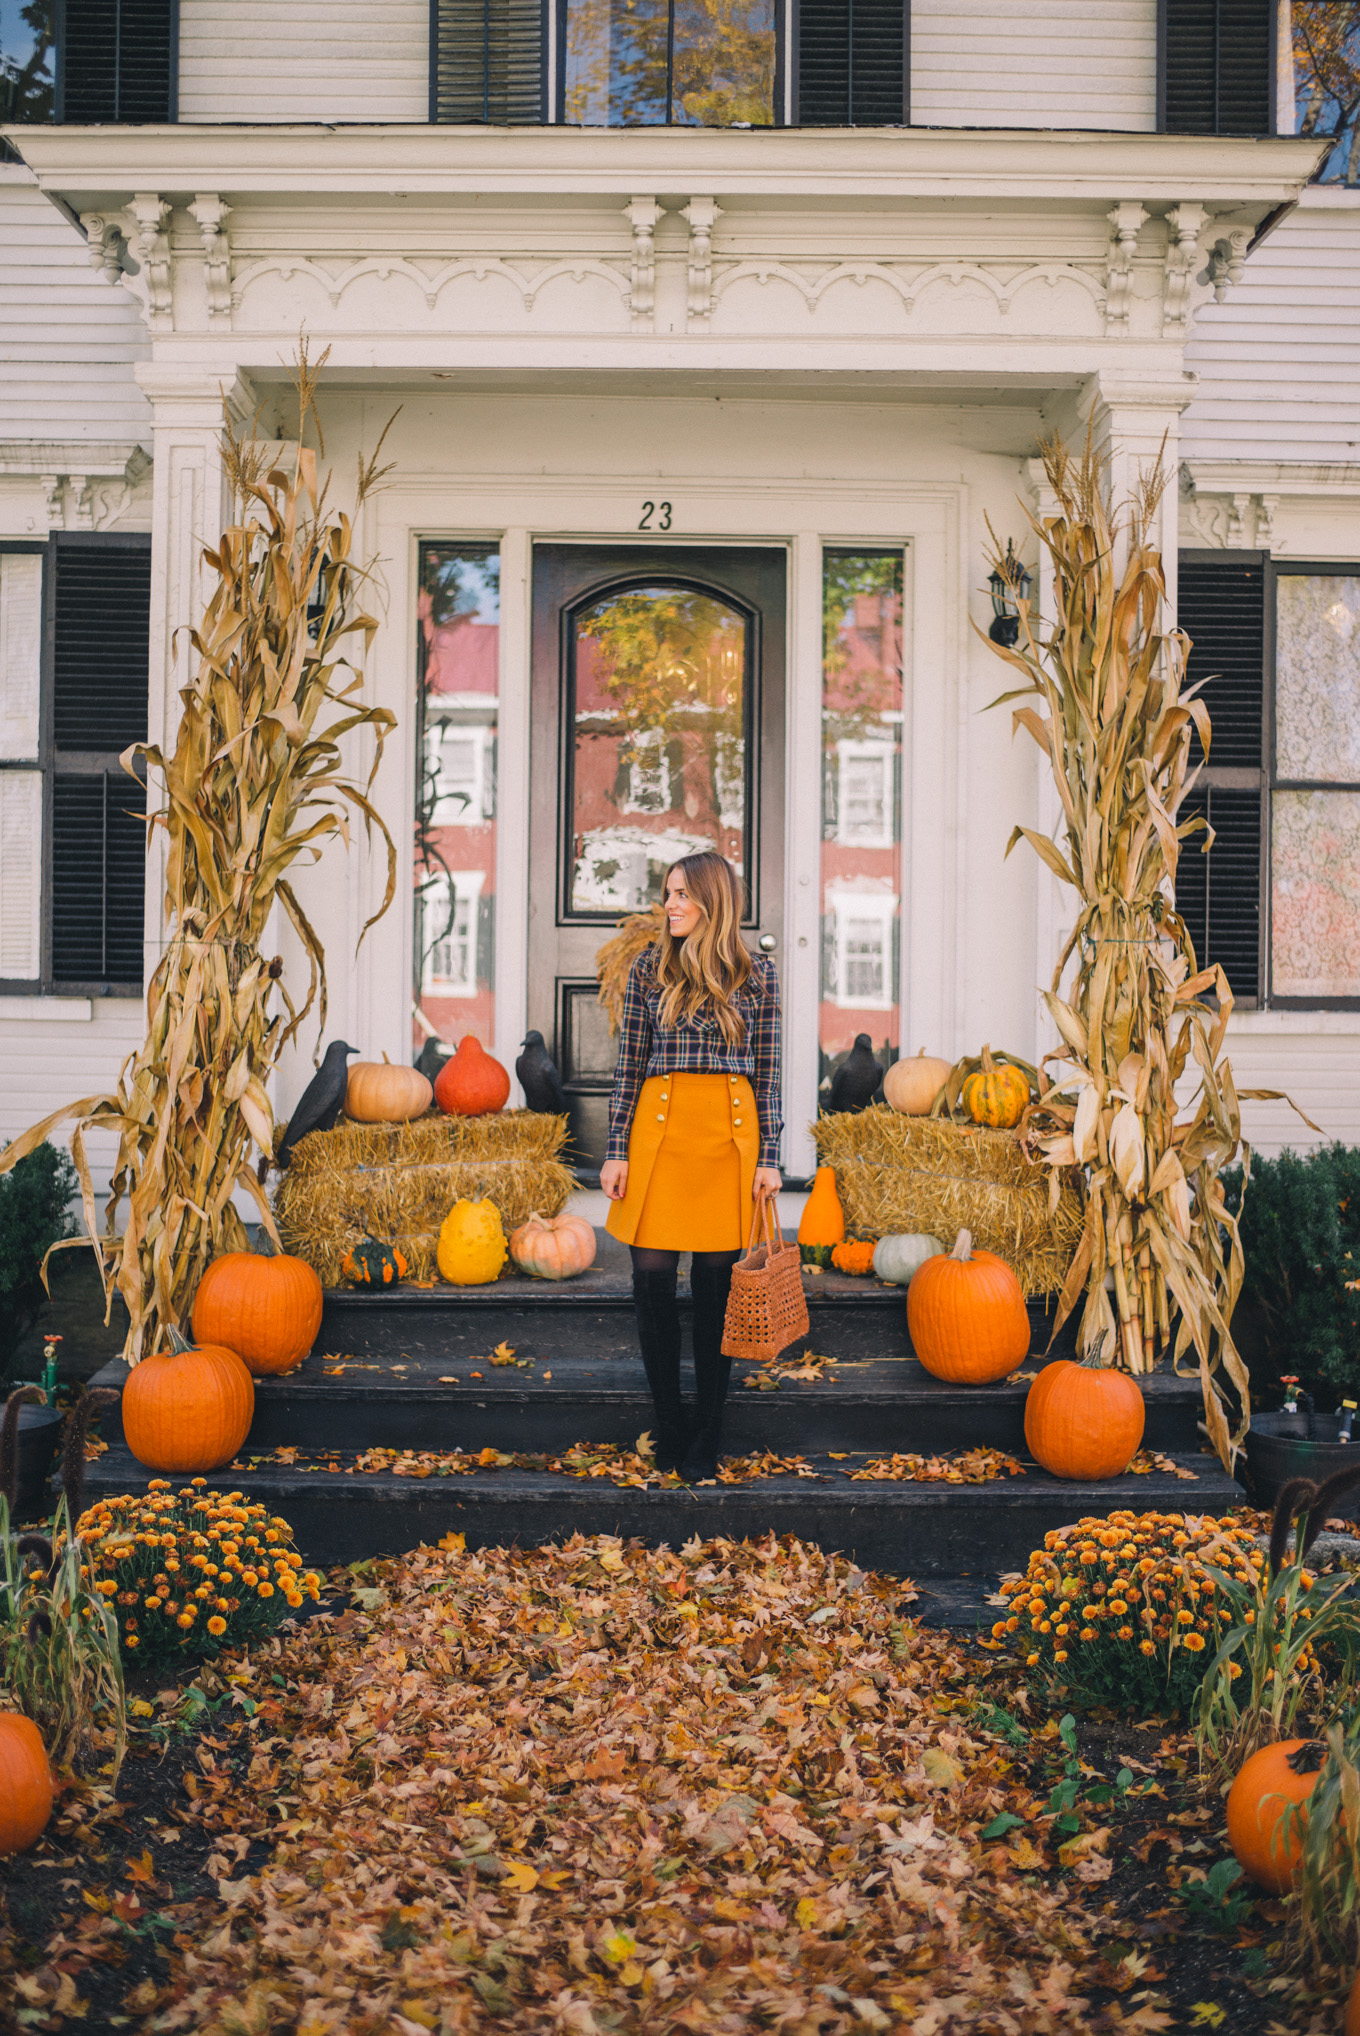 gmg-woodstock-vermont-fall-1002674